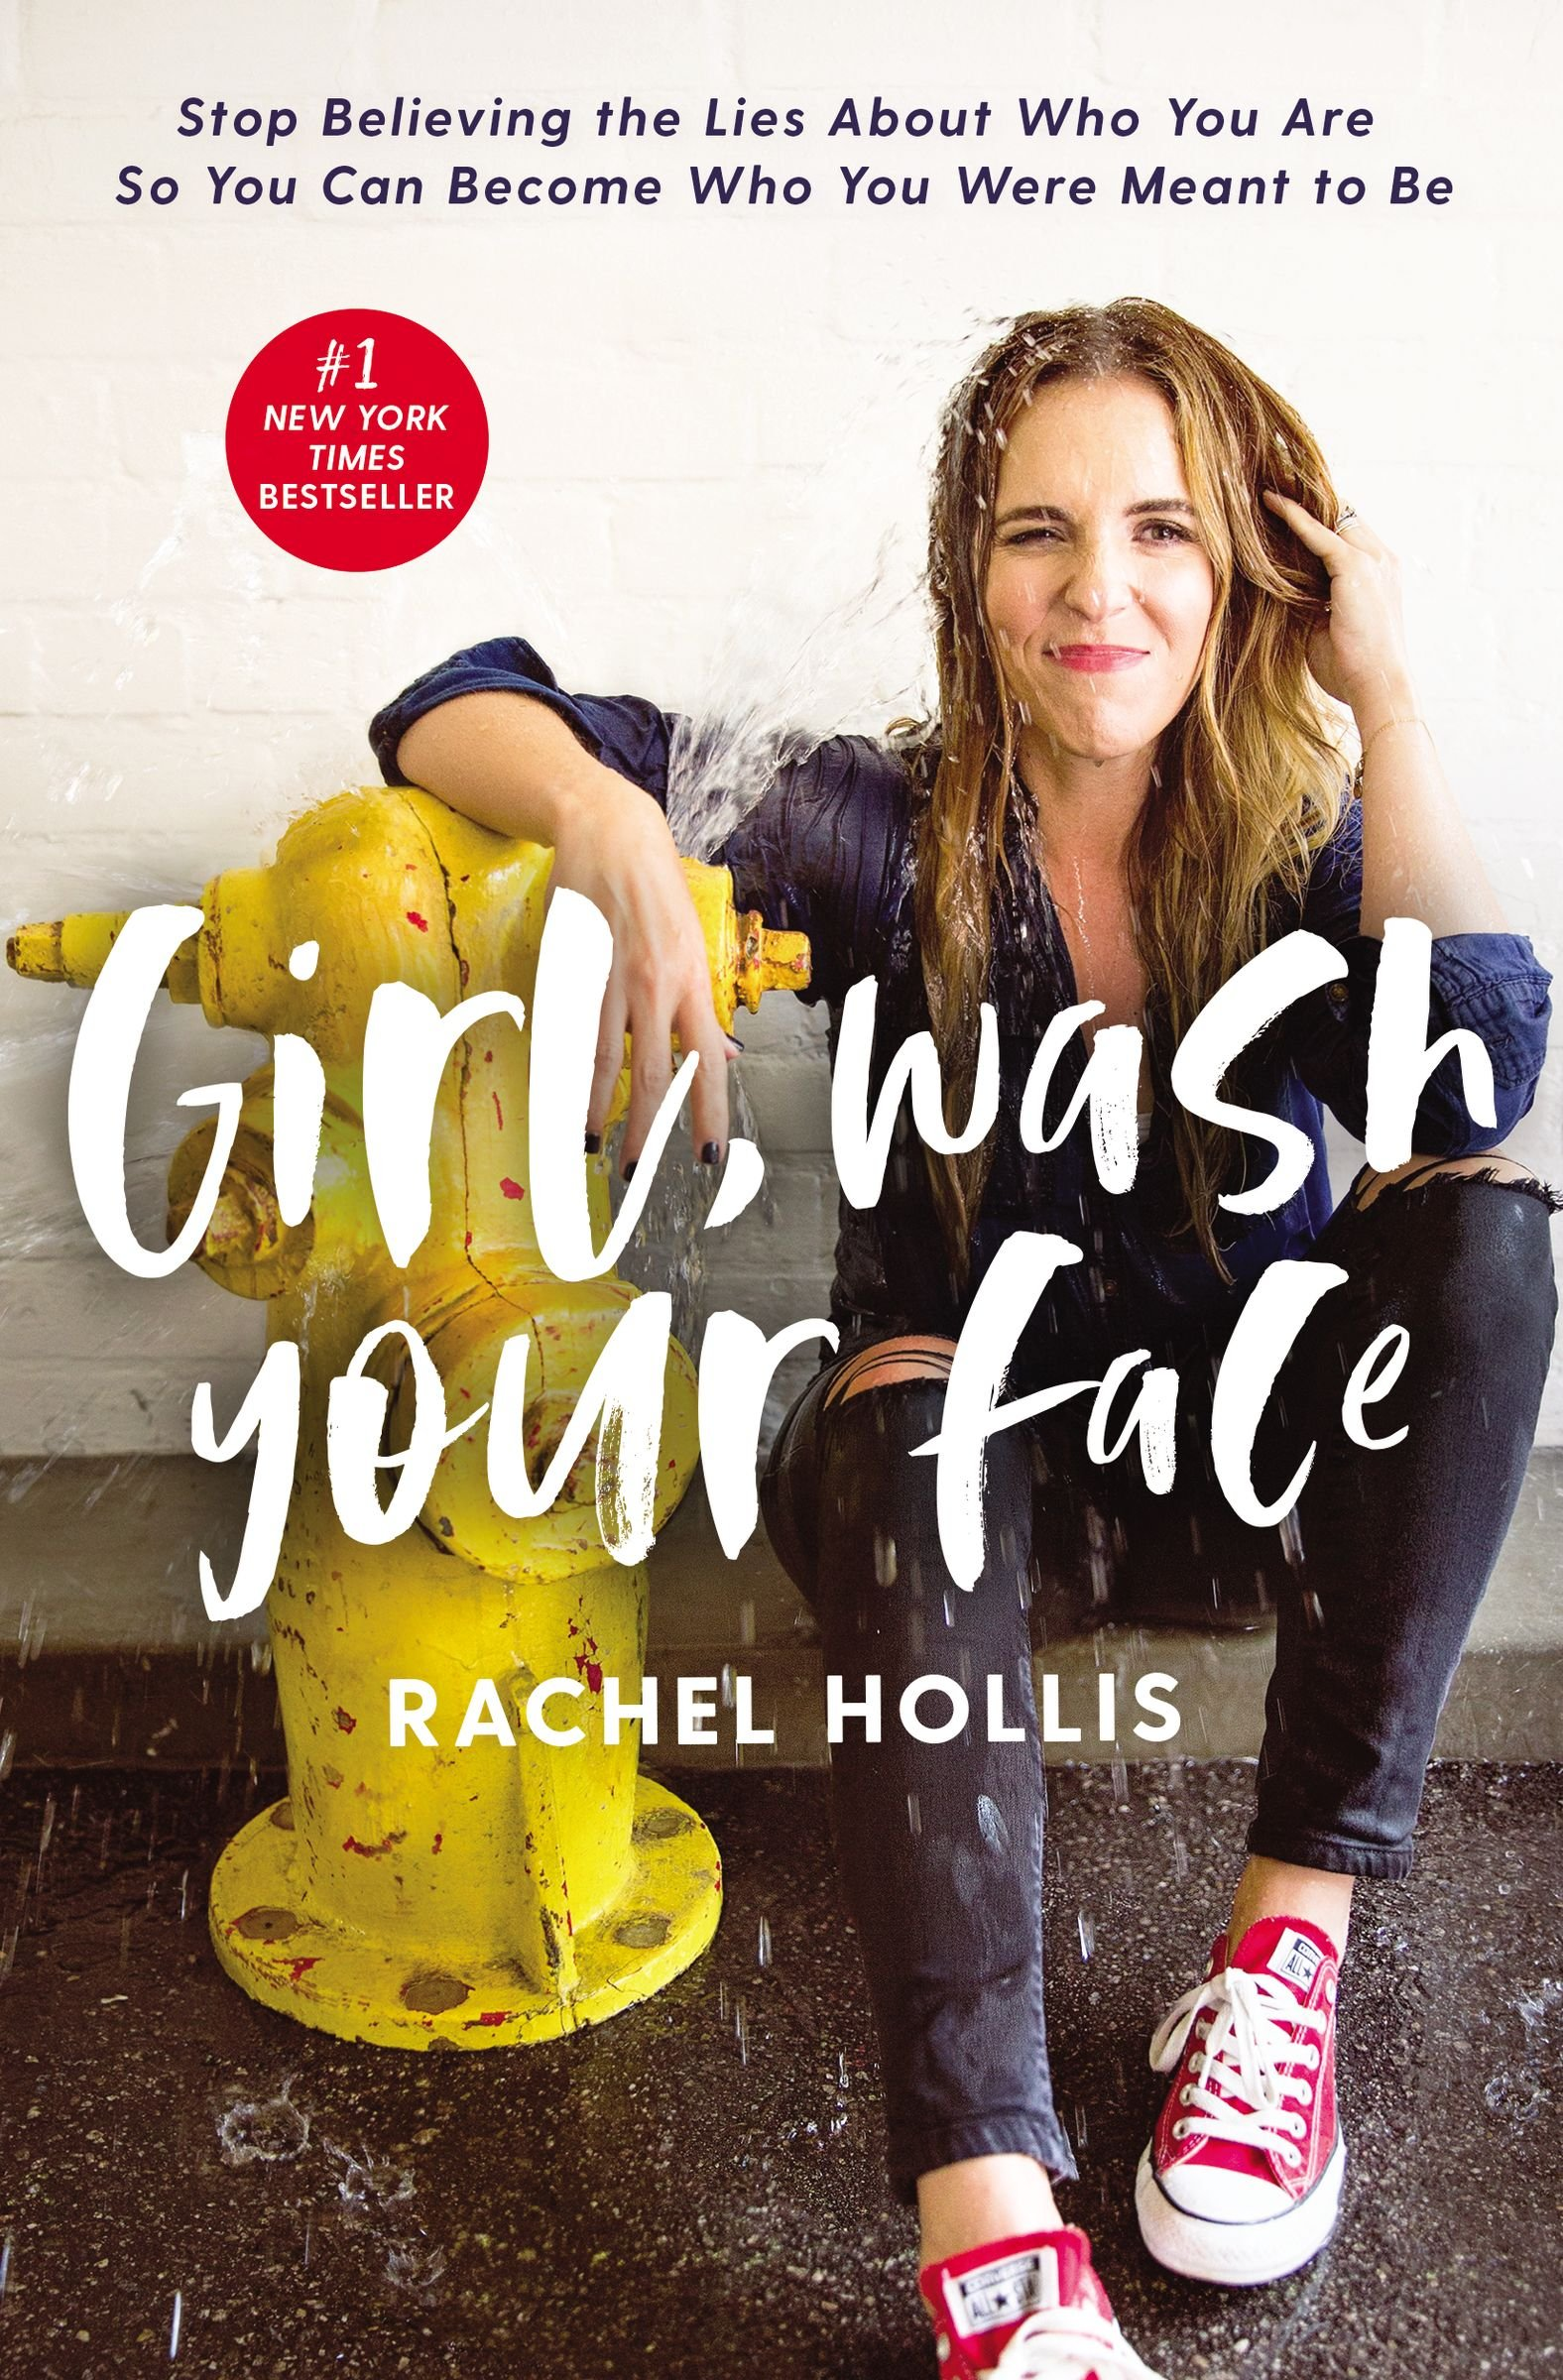 Girl, Wash Your Face - By: Rachel HollisThis is one of my all-time favourite self-help books. Rachel has a way of humanizing problems and things we constantly tell ourselves. But most of all, she gives tools, stories and ways to move past these limiting beliefs.